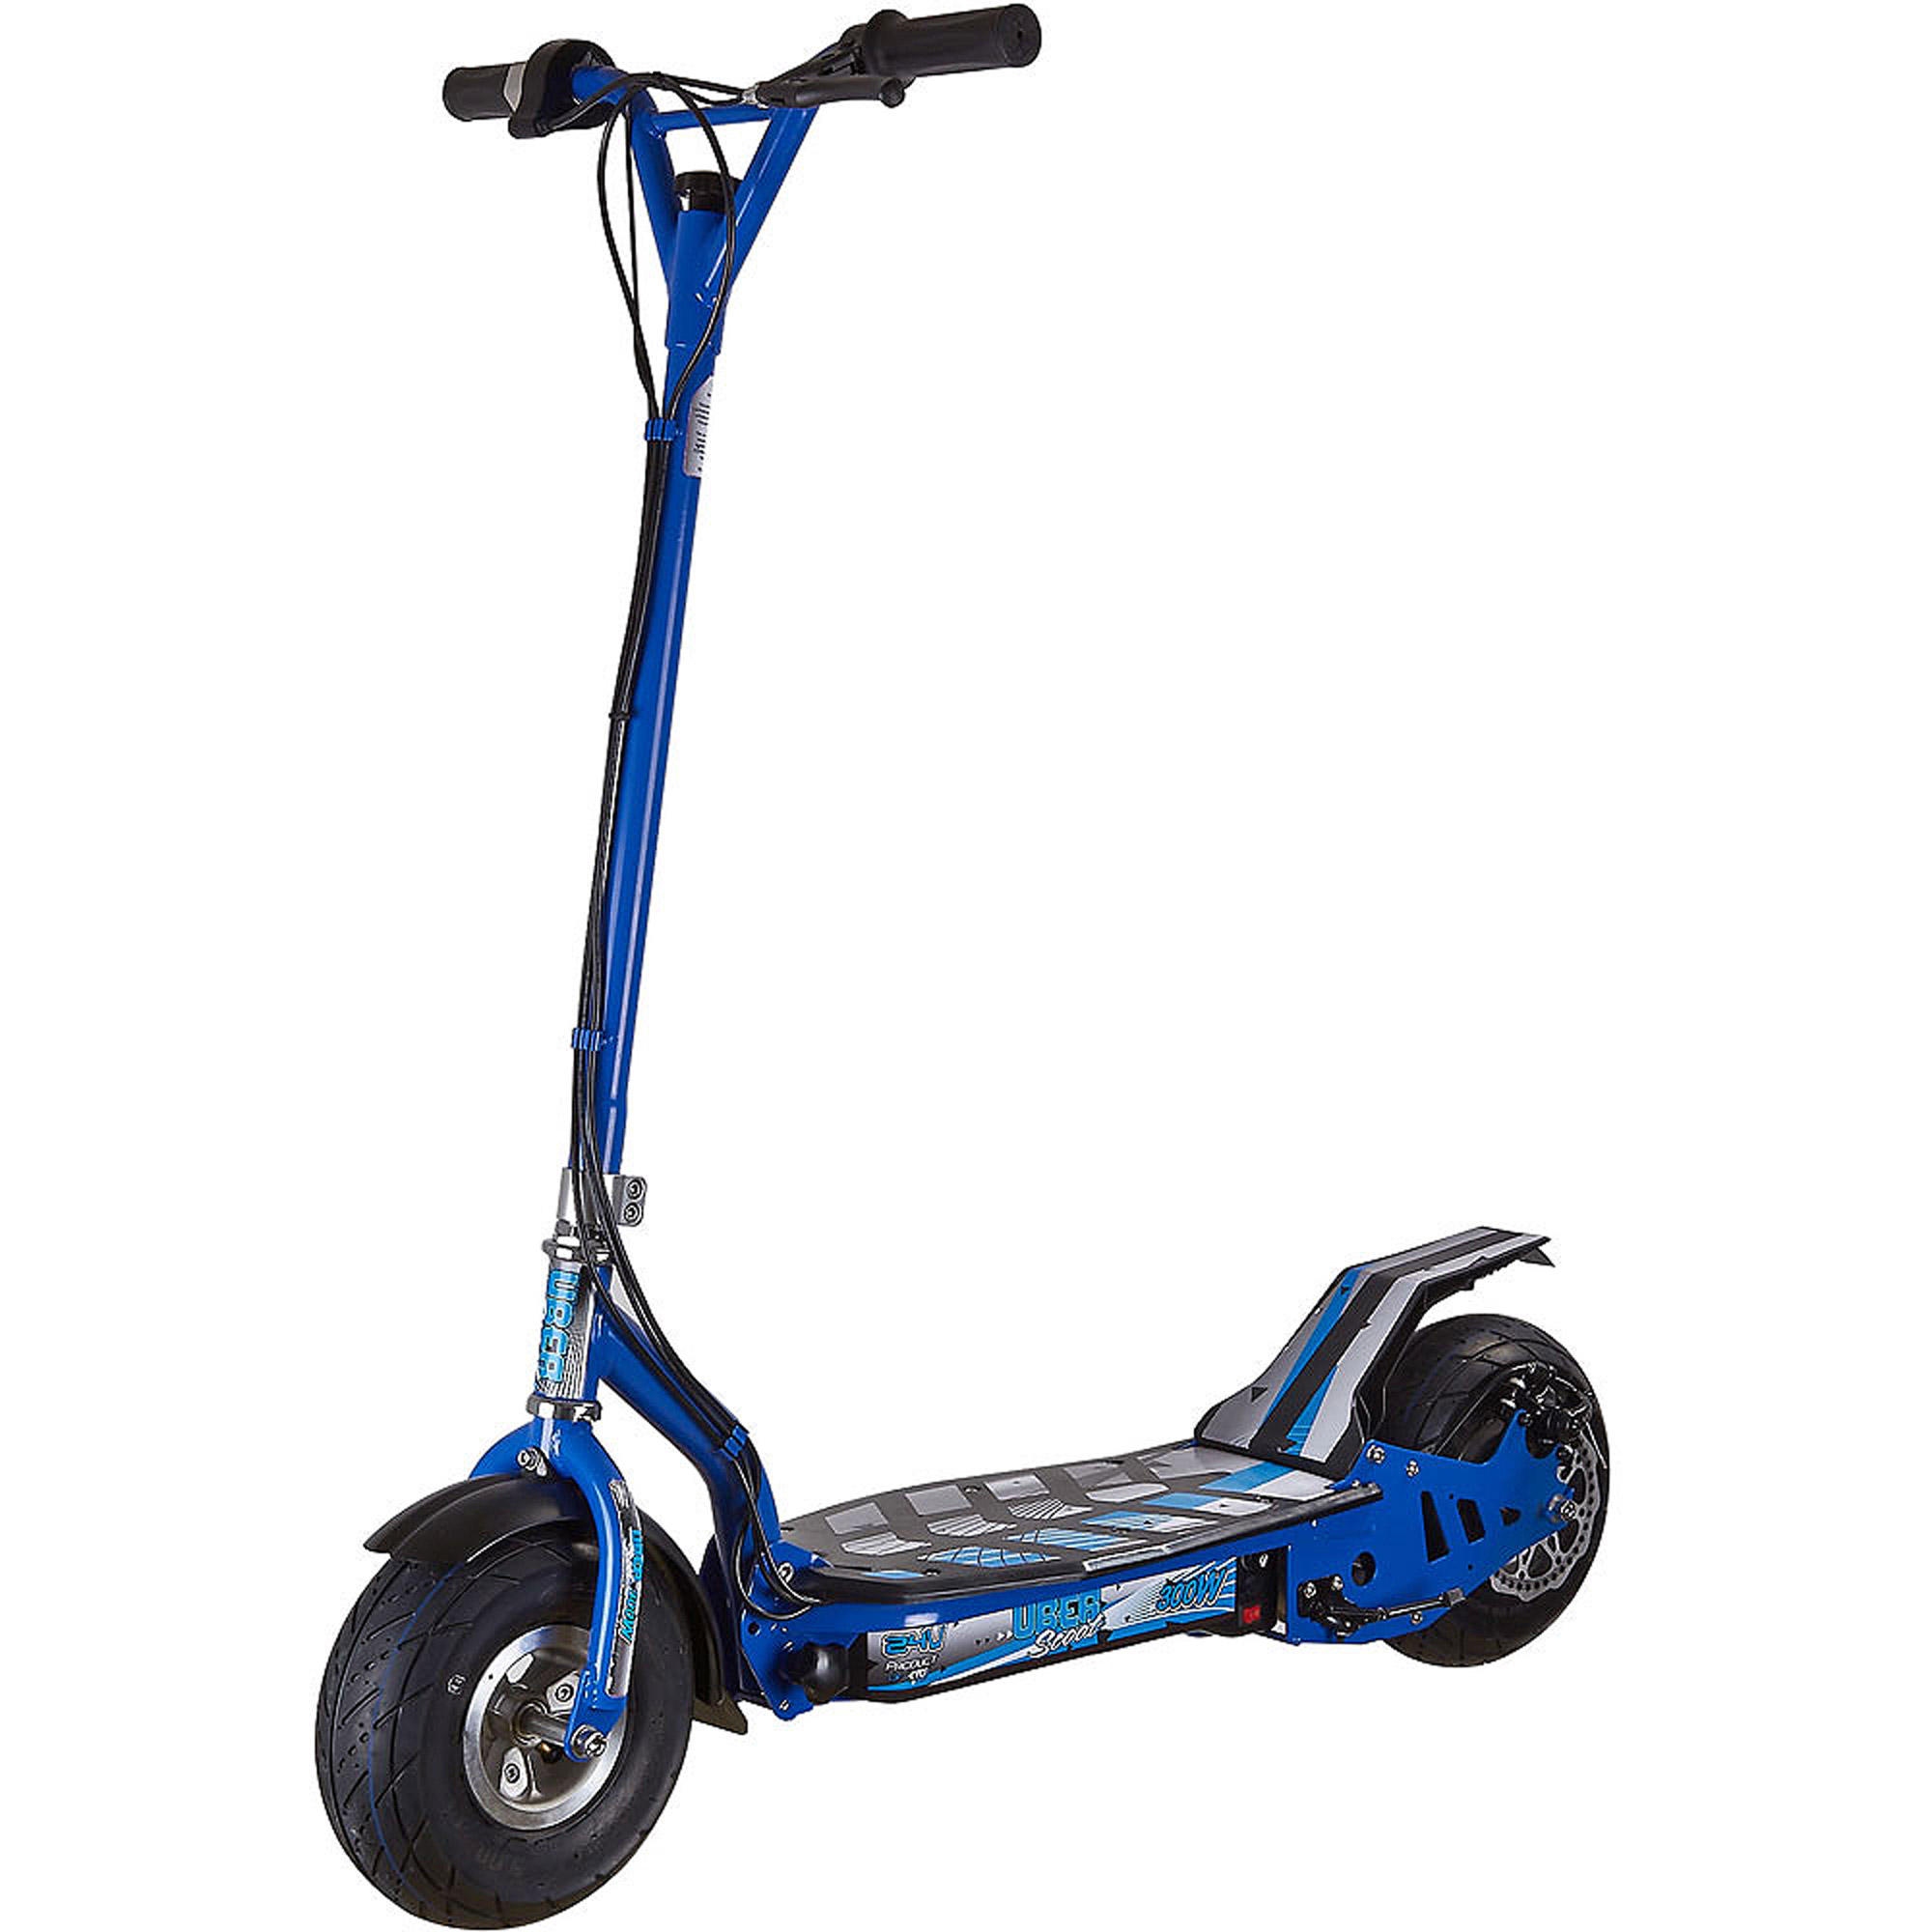 UberScoot 300W Scooter, Blue, by Evo Powerboards